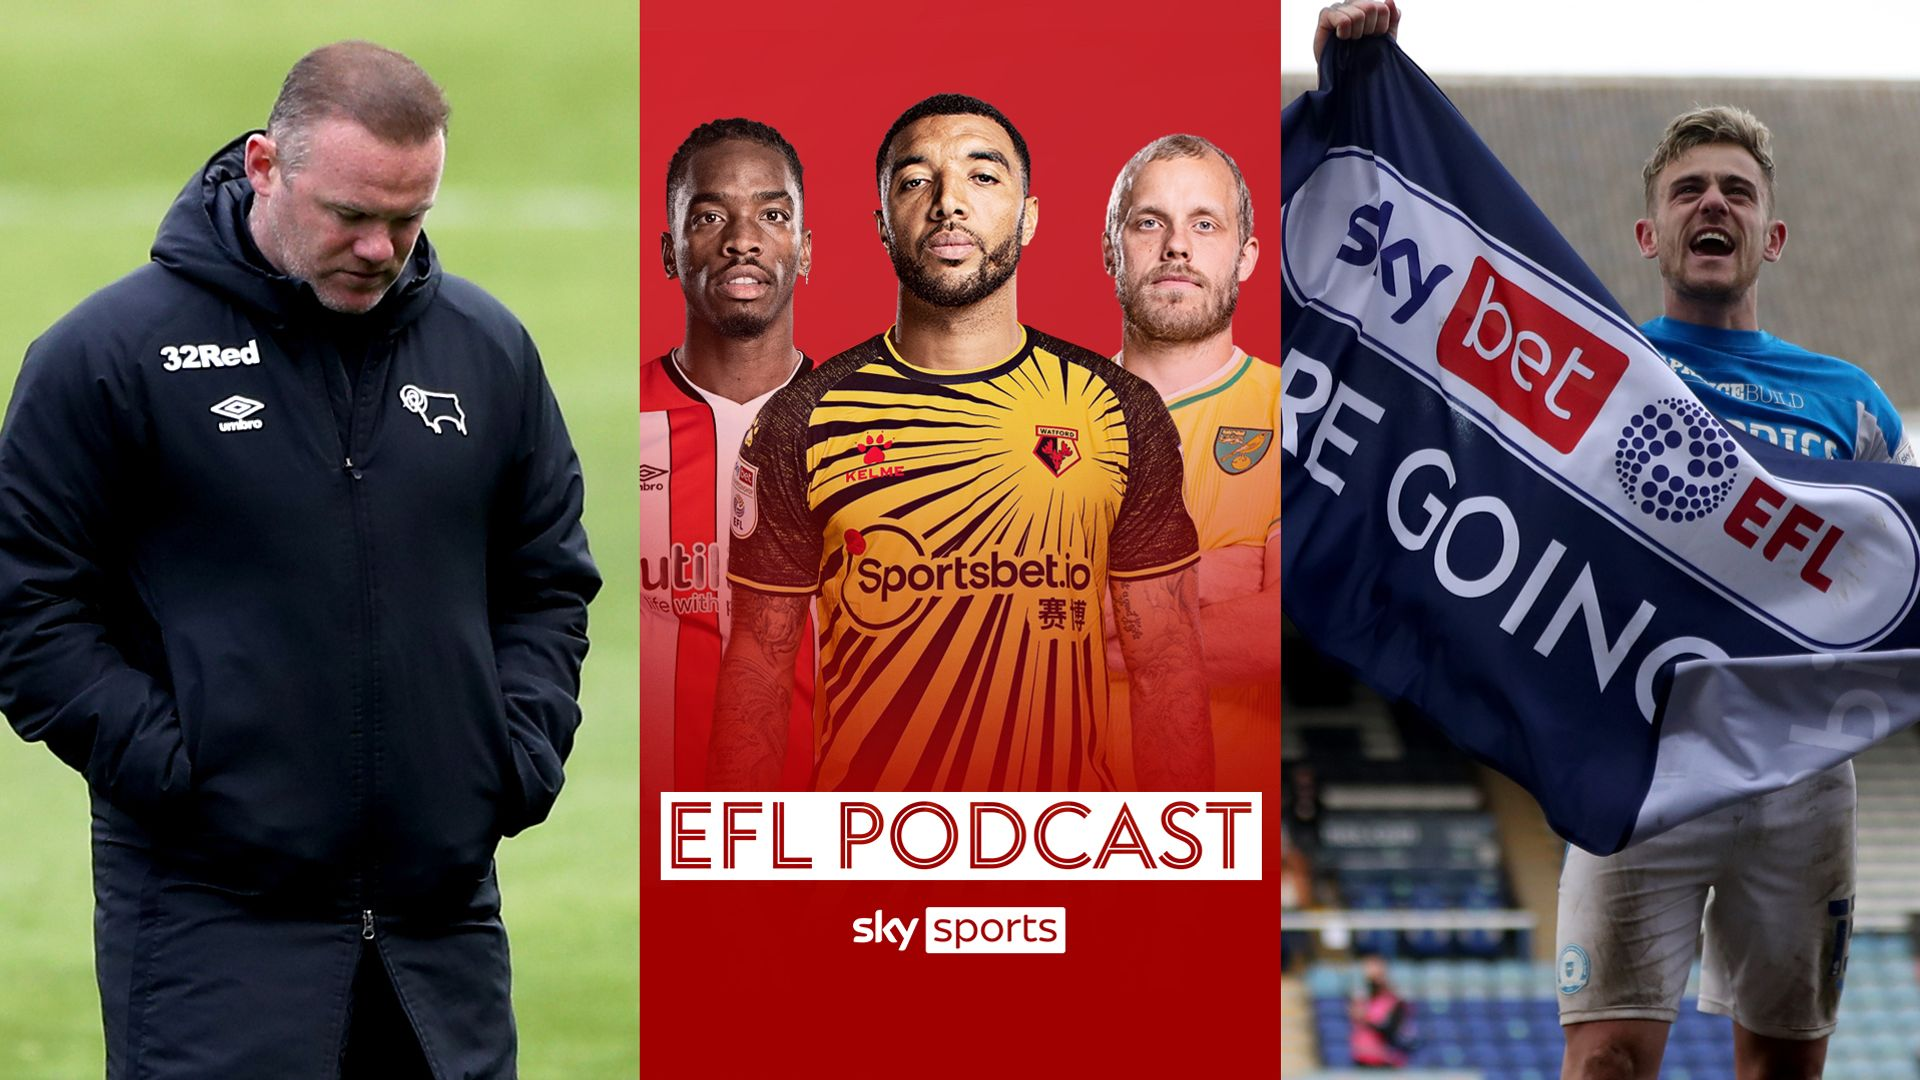 EFL Podcast: Ups, downs & final-day drama to come